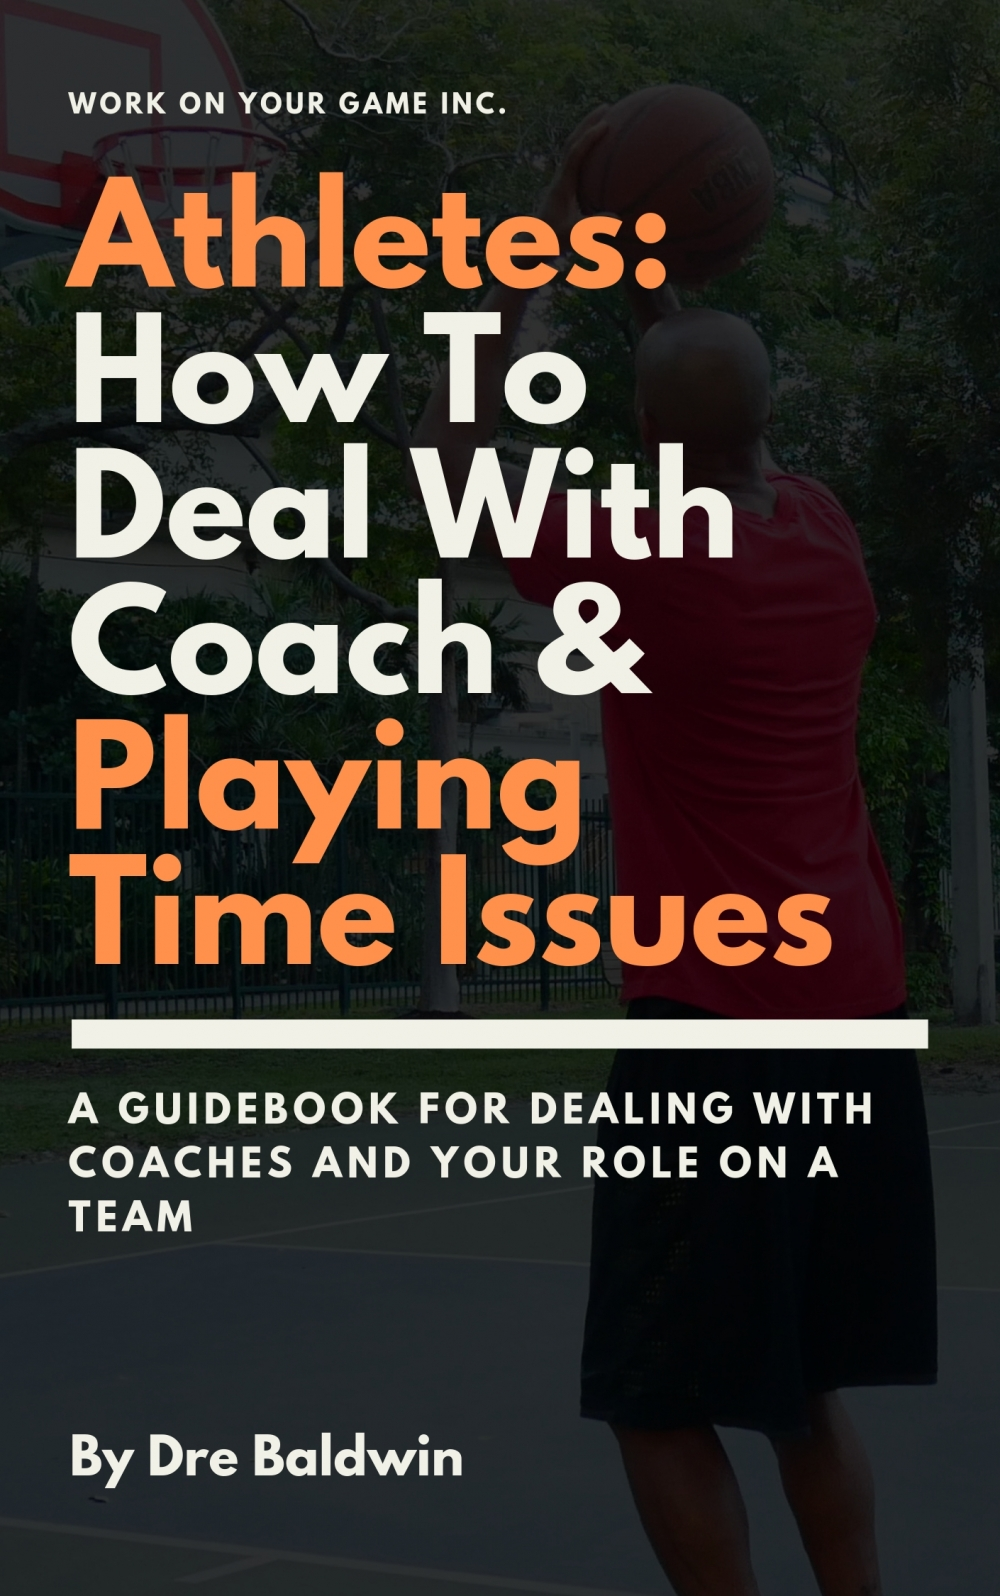 Athletes_ How To Deal With Coach & Playing Time Issues Dre Baldwin DreAllDay.com